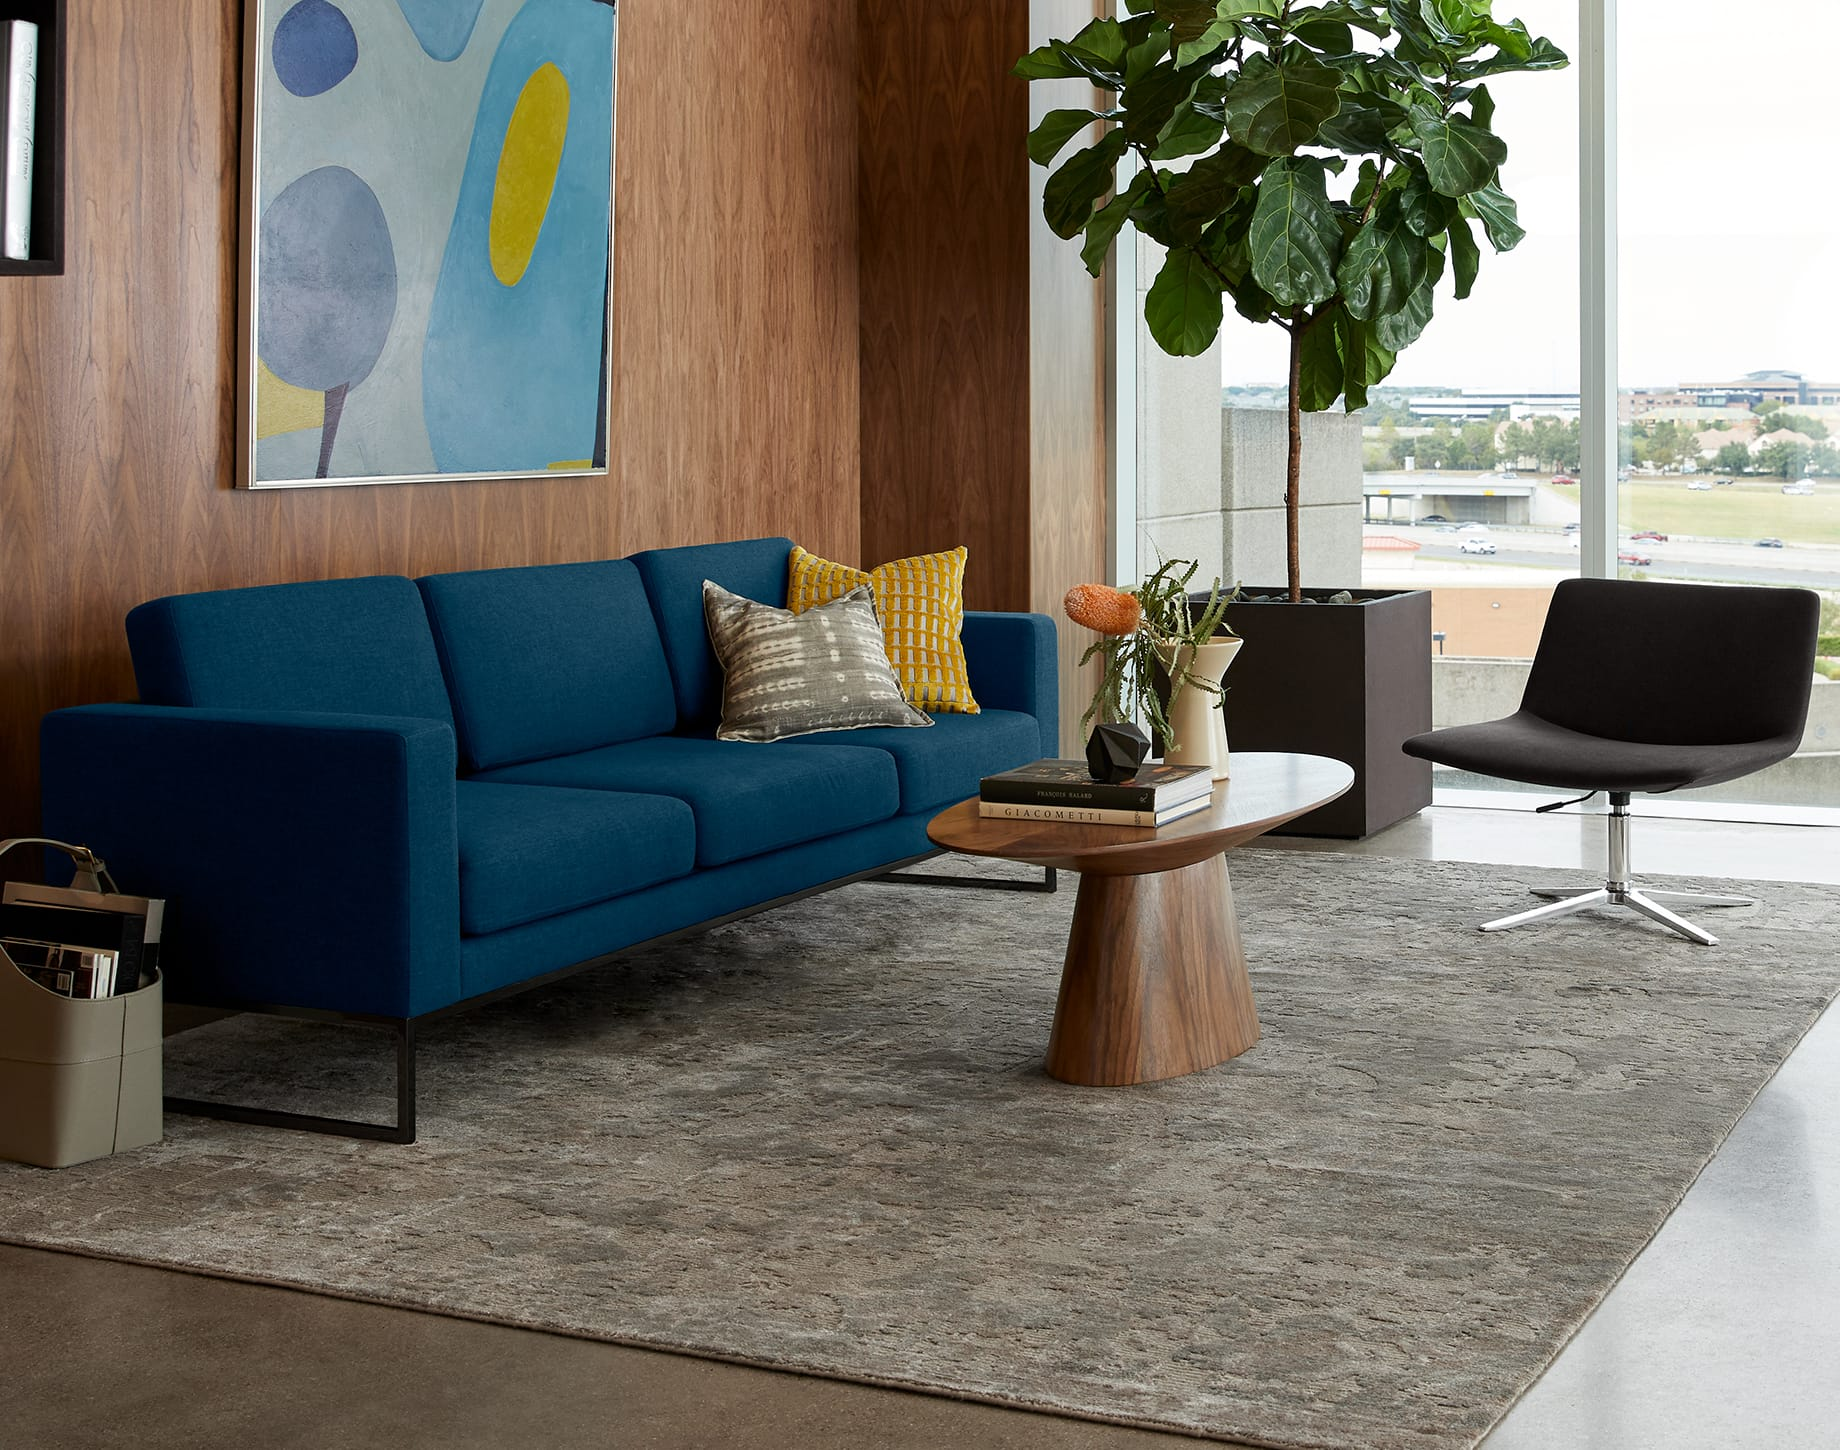 three-seat sofa appears with grey chair and oval coffee table in office space